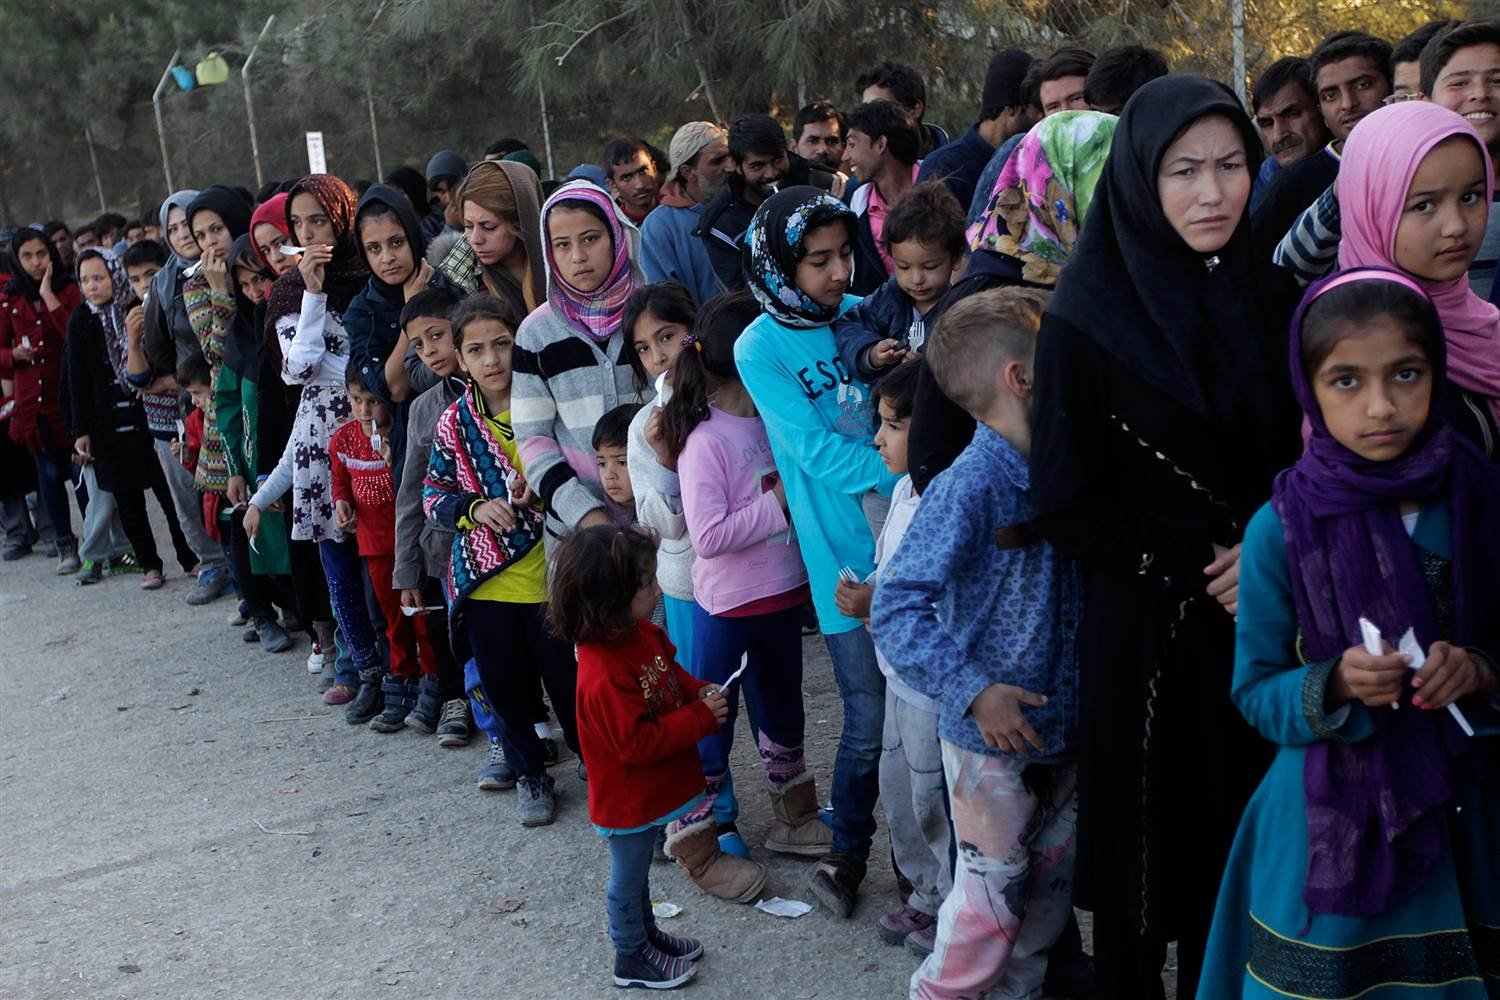 Only 28 of 10,000 refugees in Washington from Syria